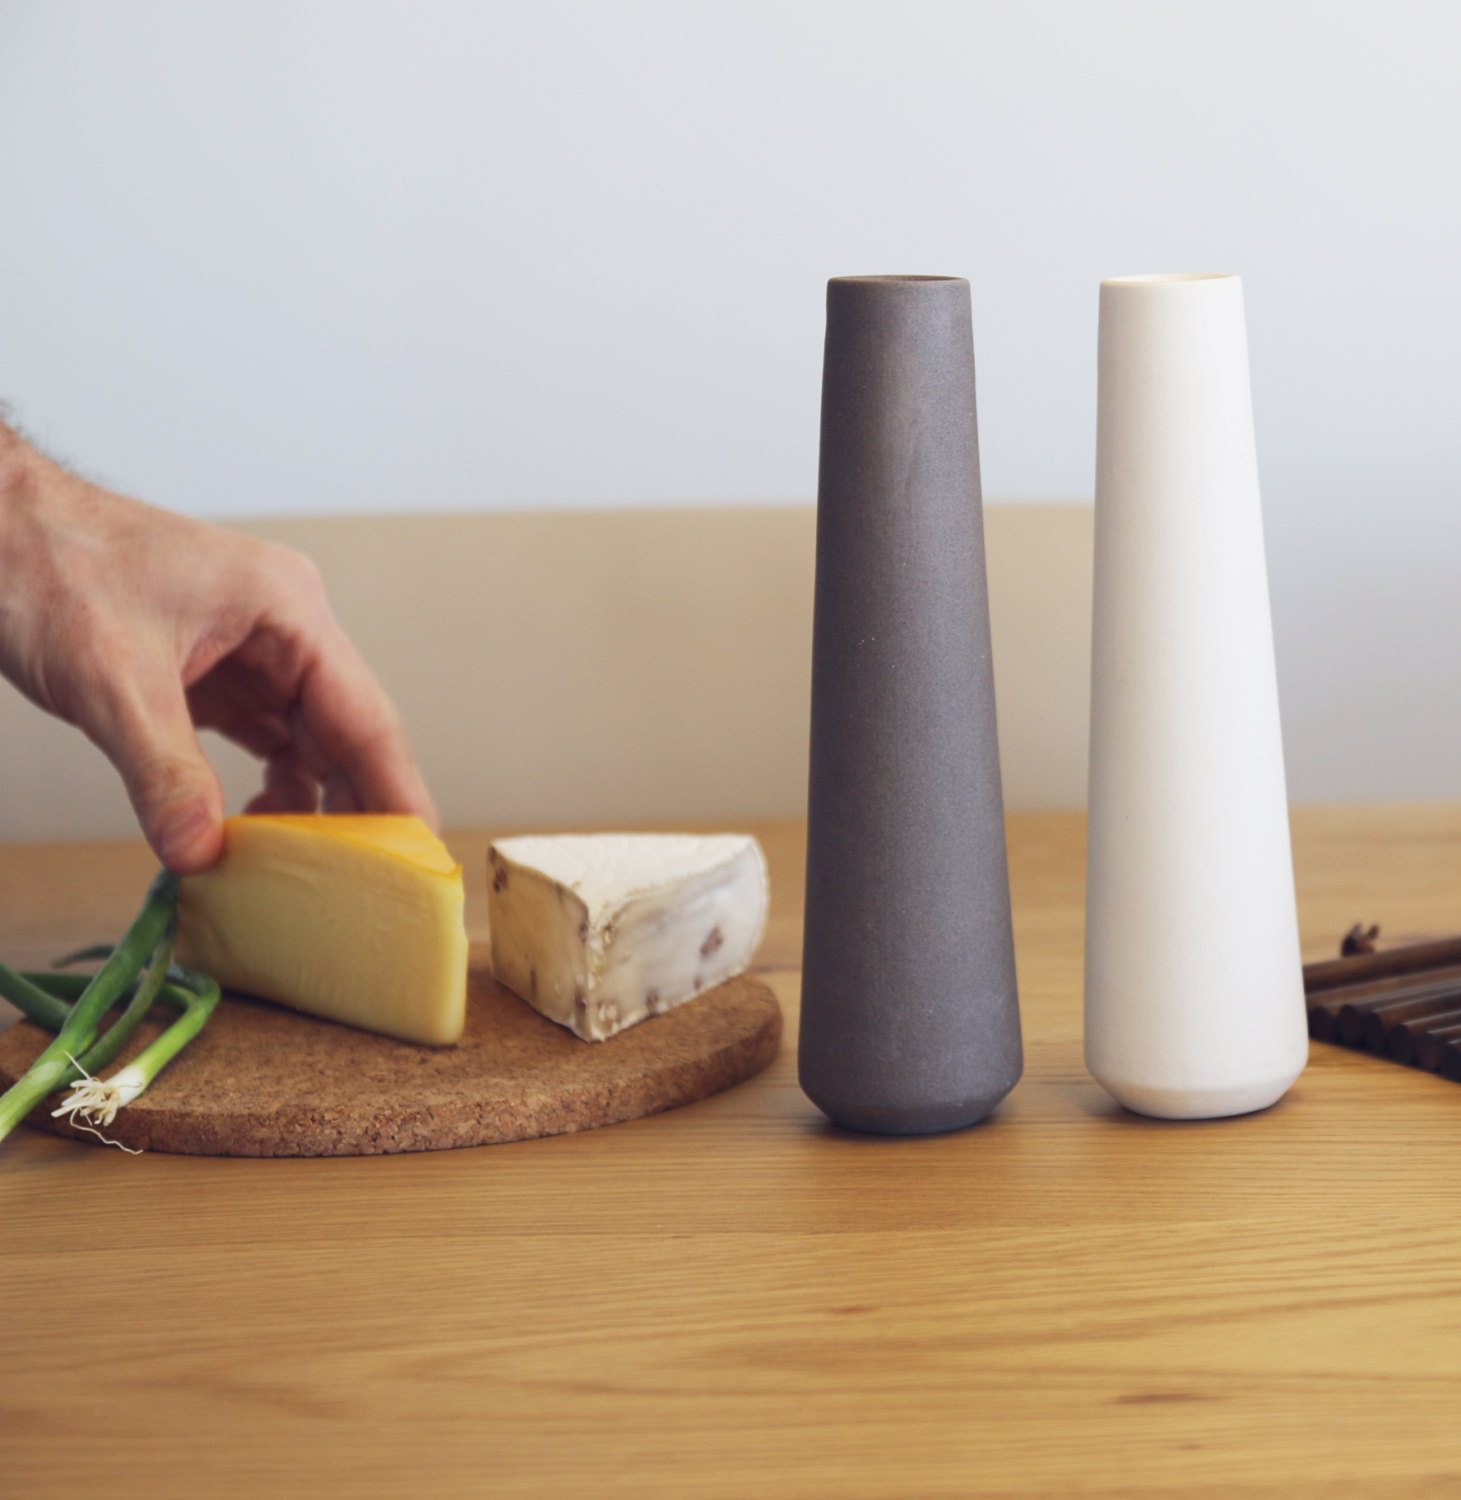 Modern design ceramic salt and pepper shakers by Yahalomis